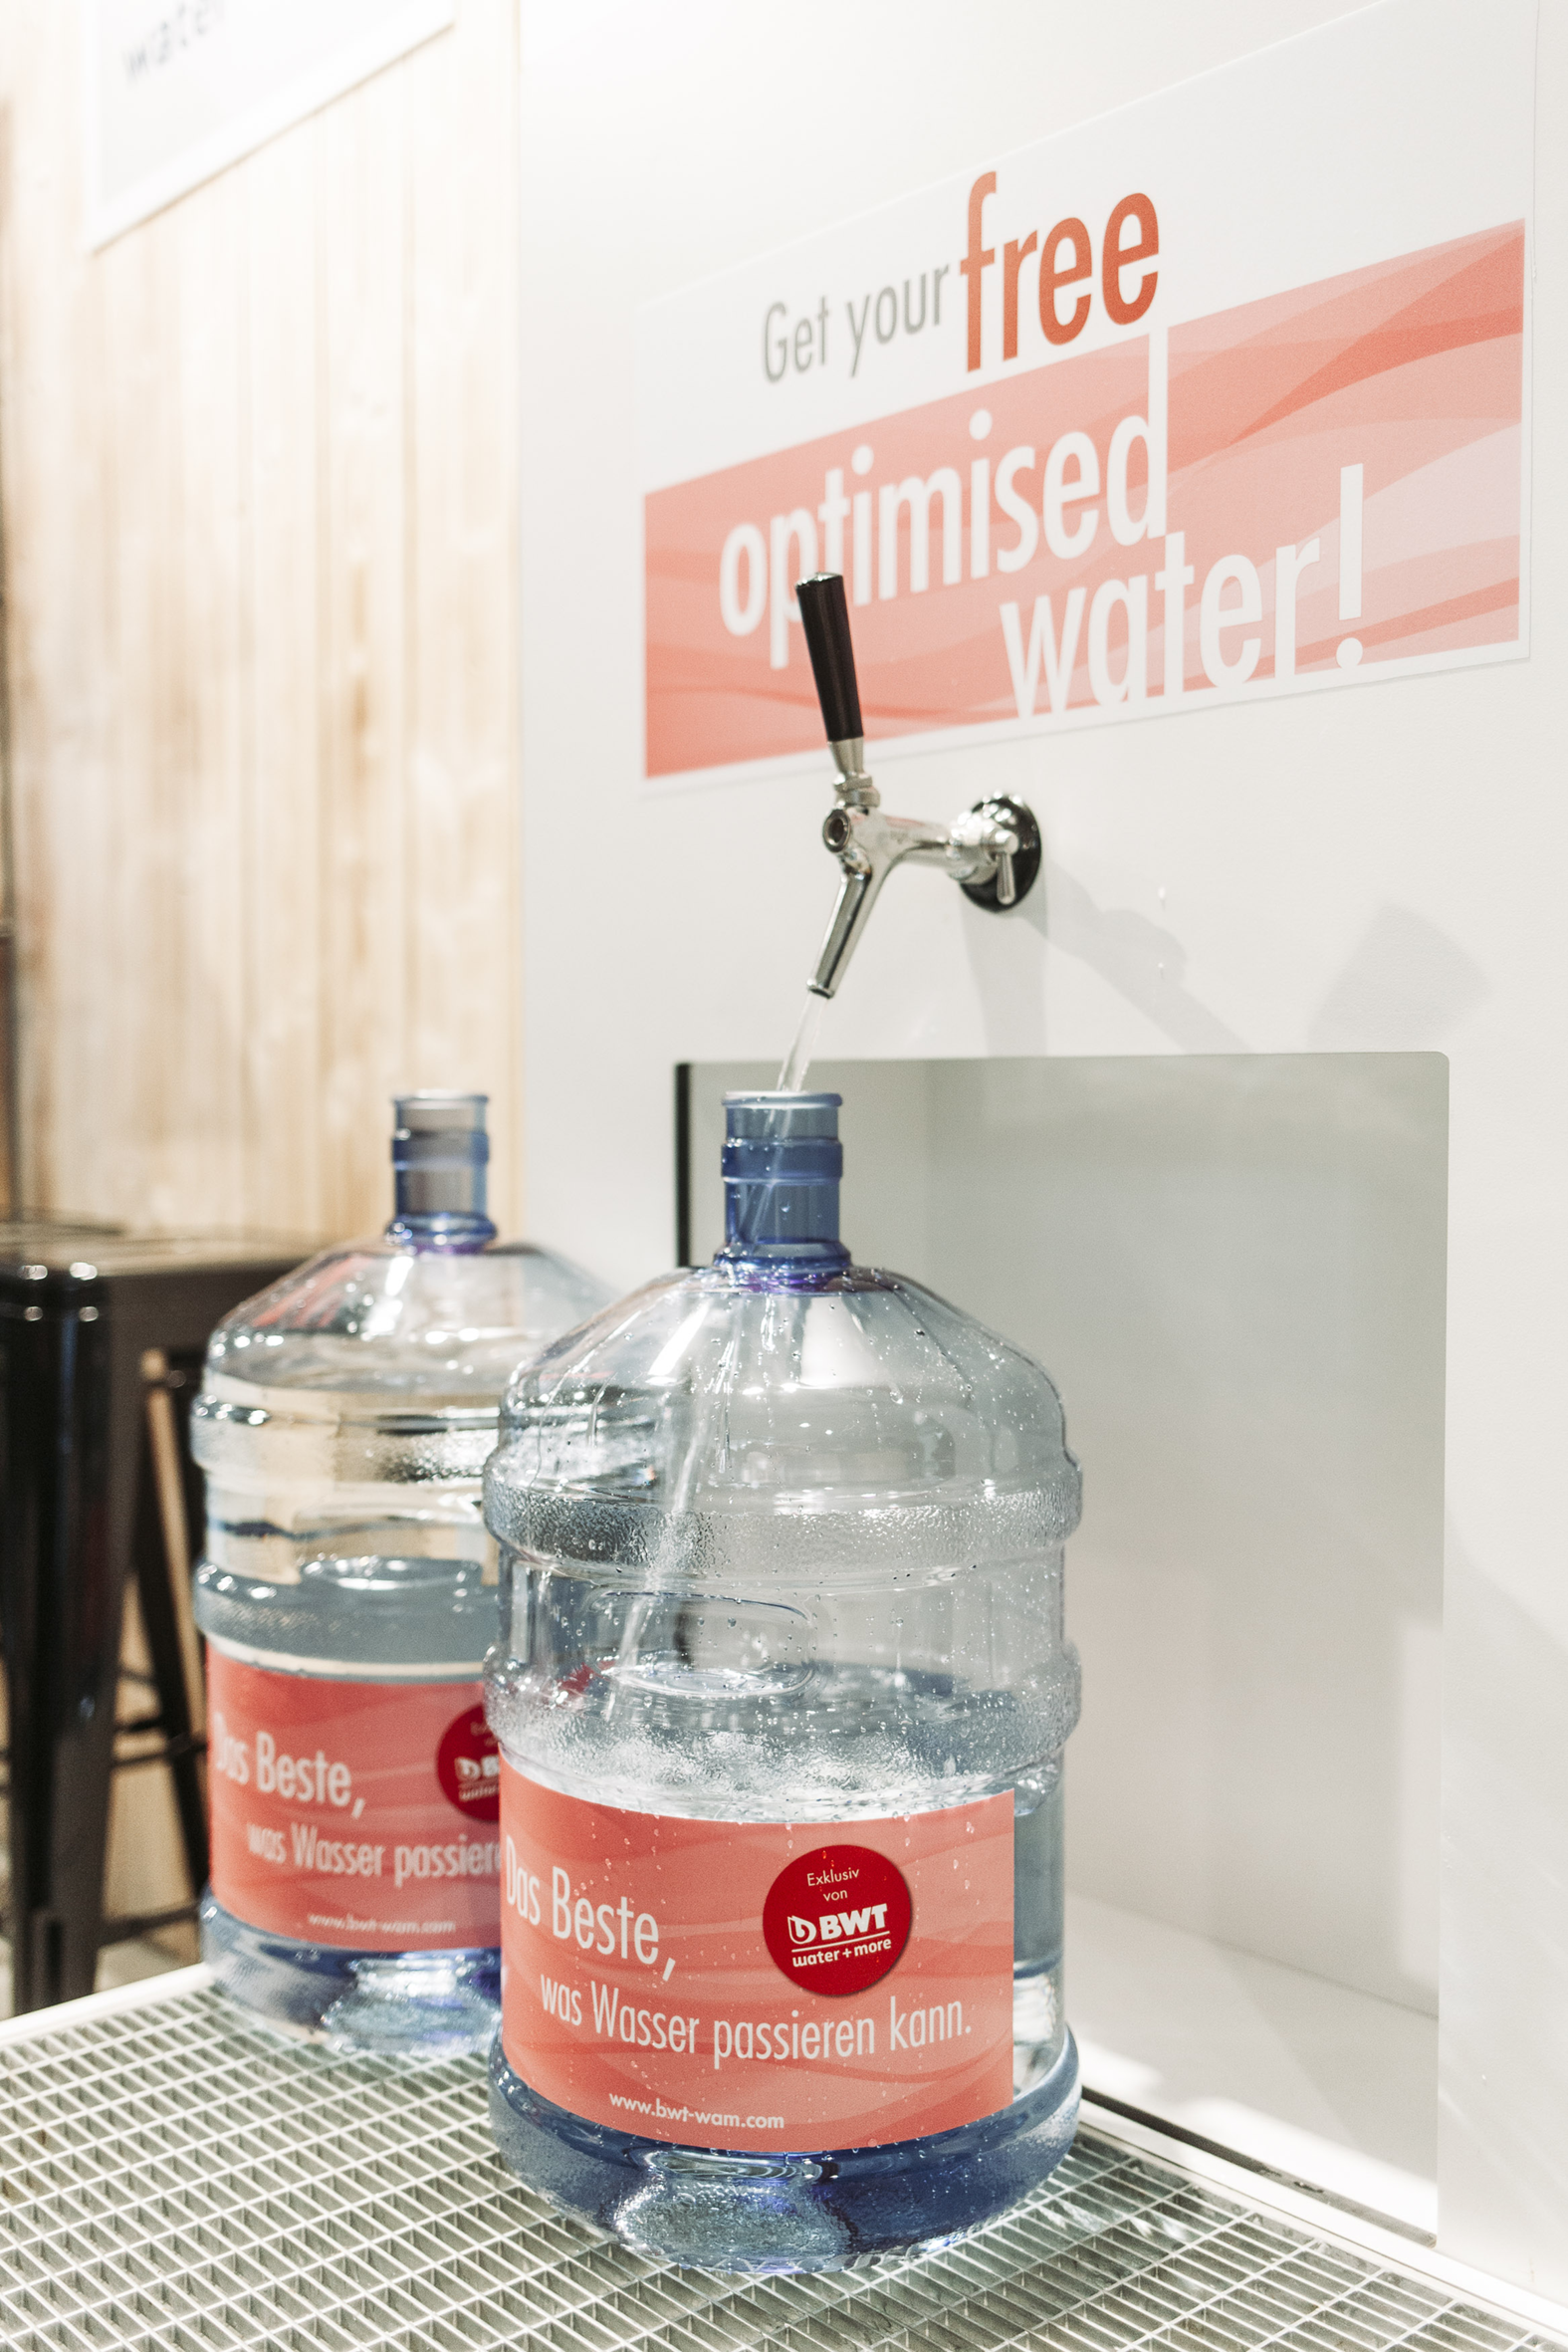 One of the many BWT water+more refill stations in use at last year's World of Coffee in Amsterdam. - Photo: sinan Muslu.